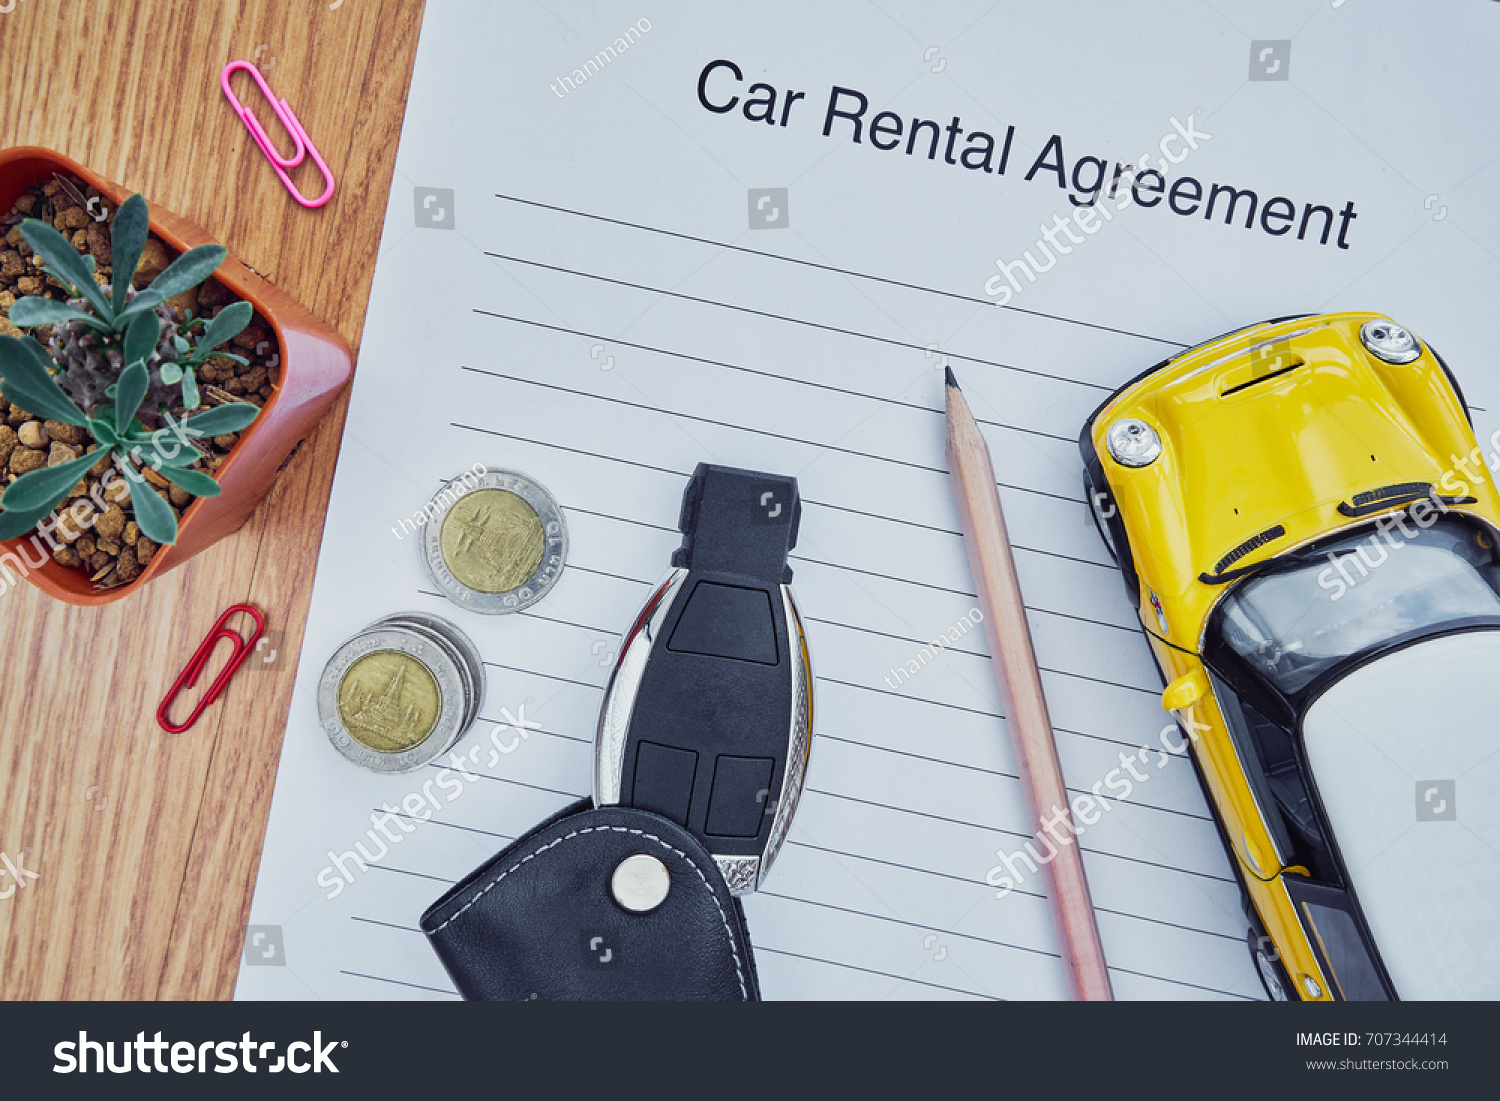 Car Rental Agreement Paper With Key, Coins And Car Model On Wooden Table